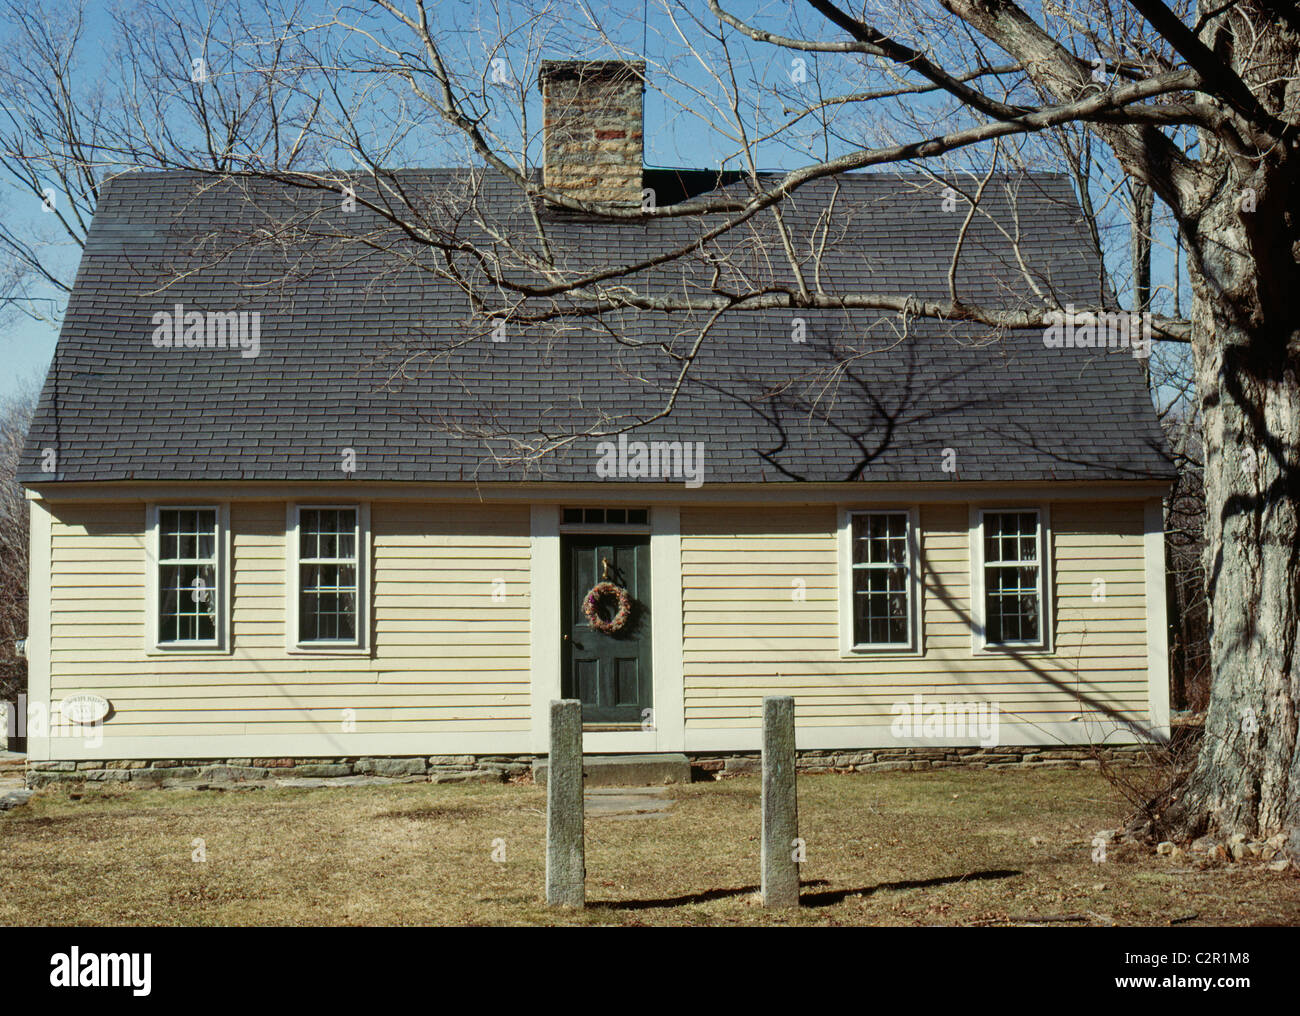 Pearson House, Cape Cod style, single storey colonial house, central chimney, clapboard. Lyme, Connecticut, New Stock Photo